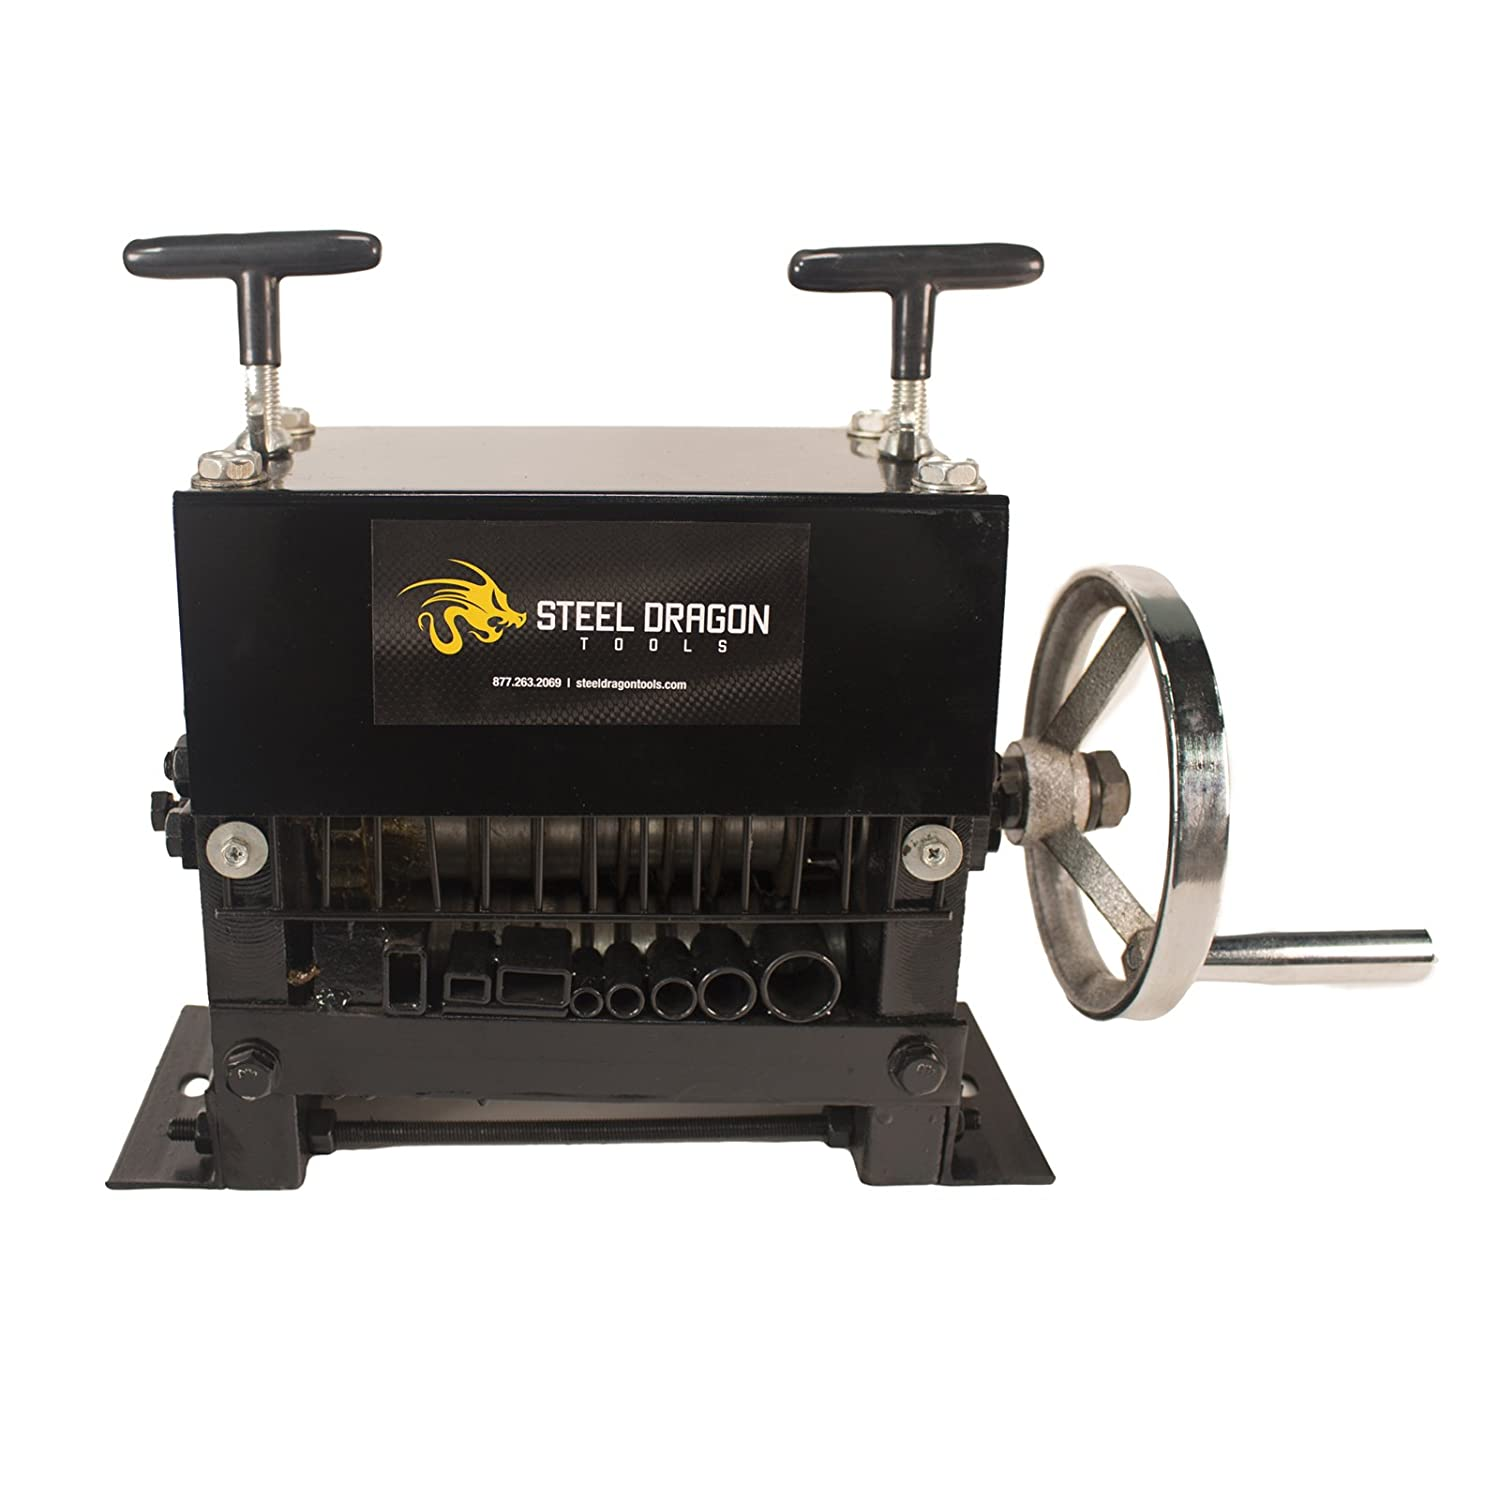 Steel Dragon Tools WRM33 Manual Wire Stripping Machine Strip Scrap ...